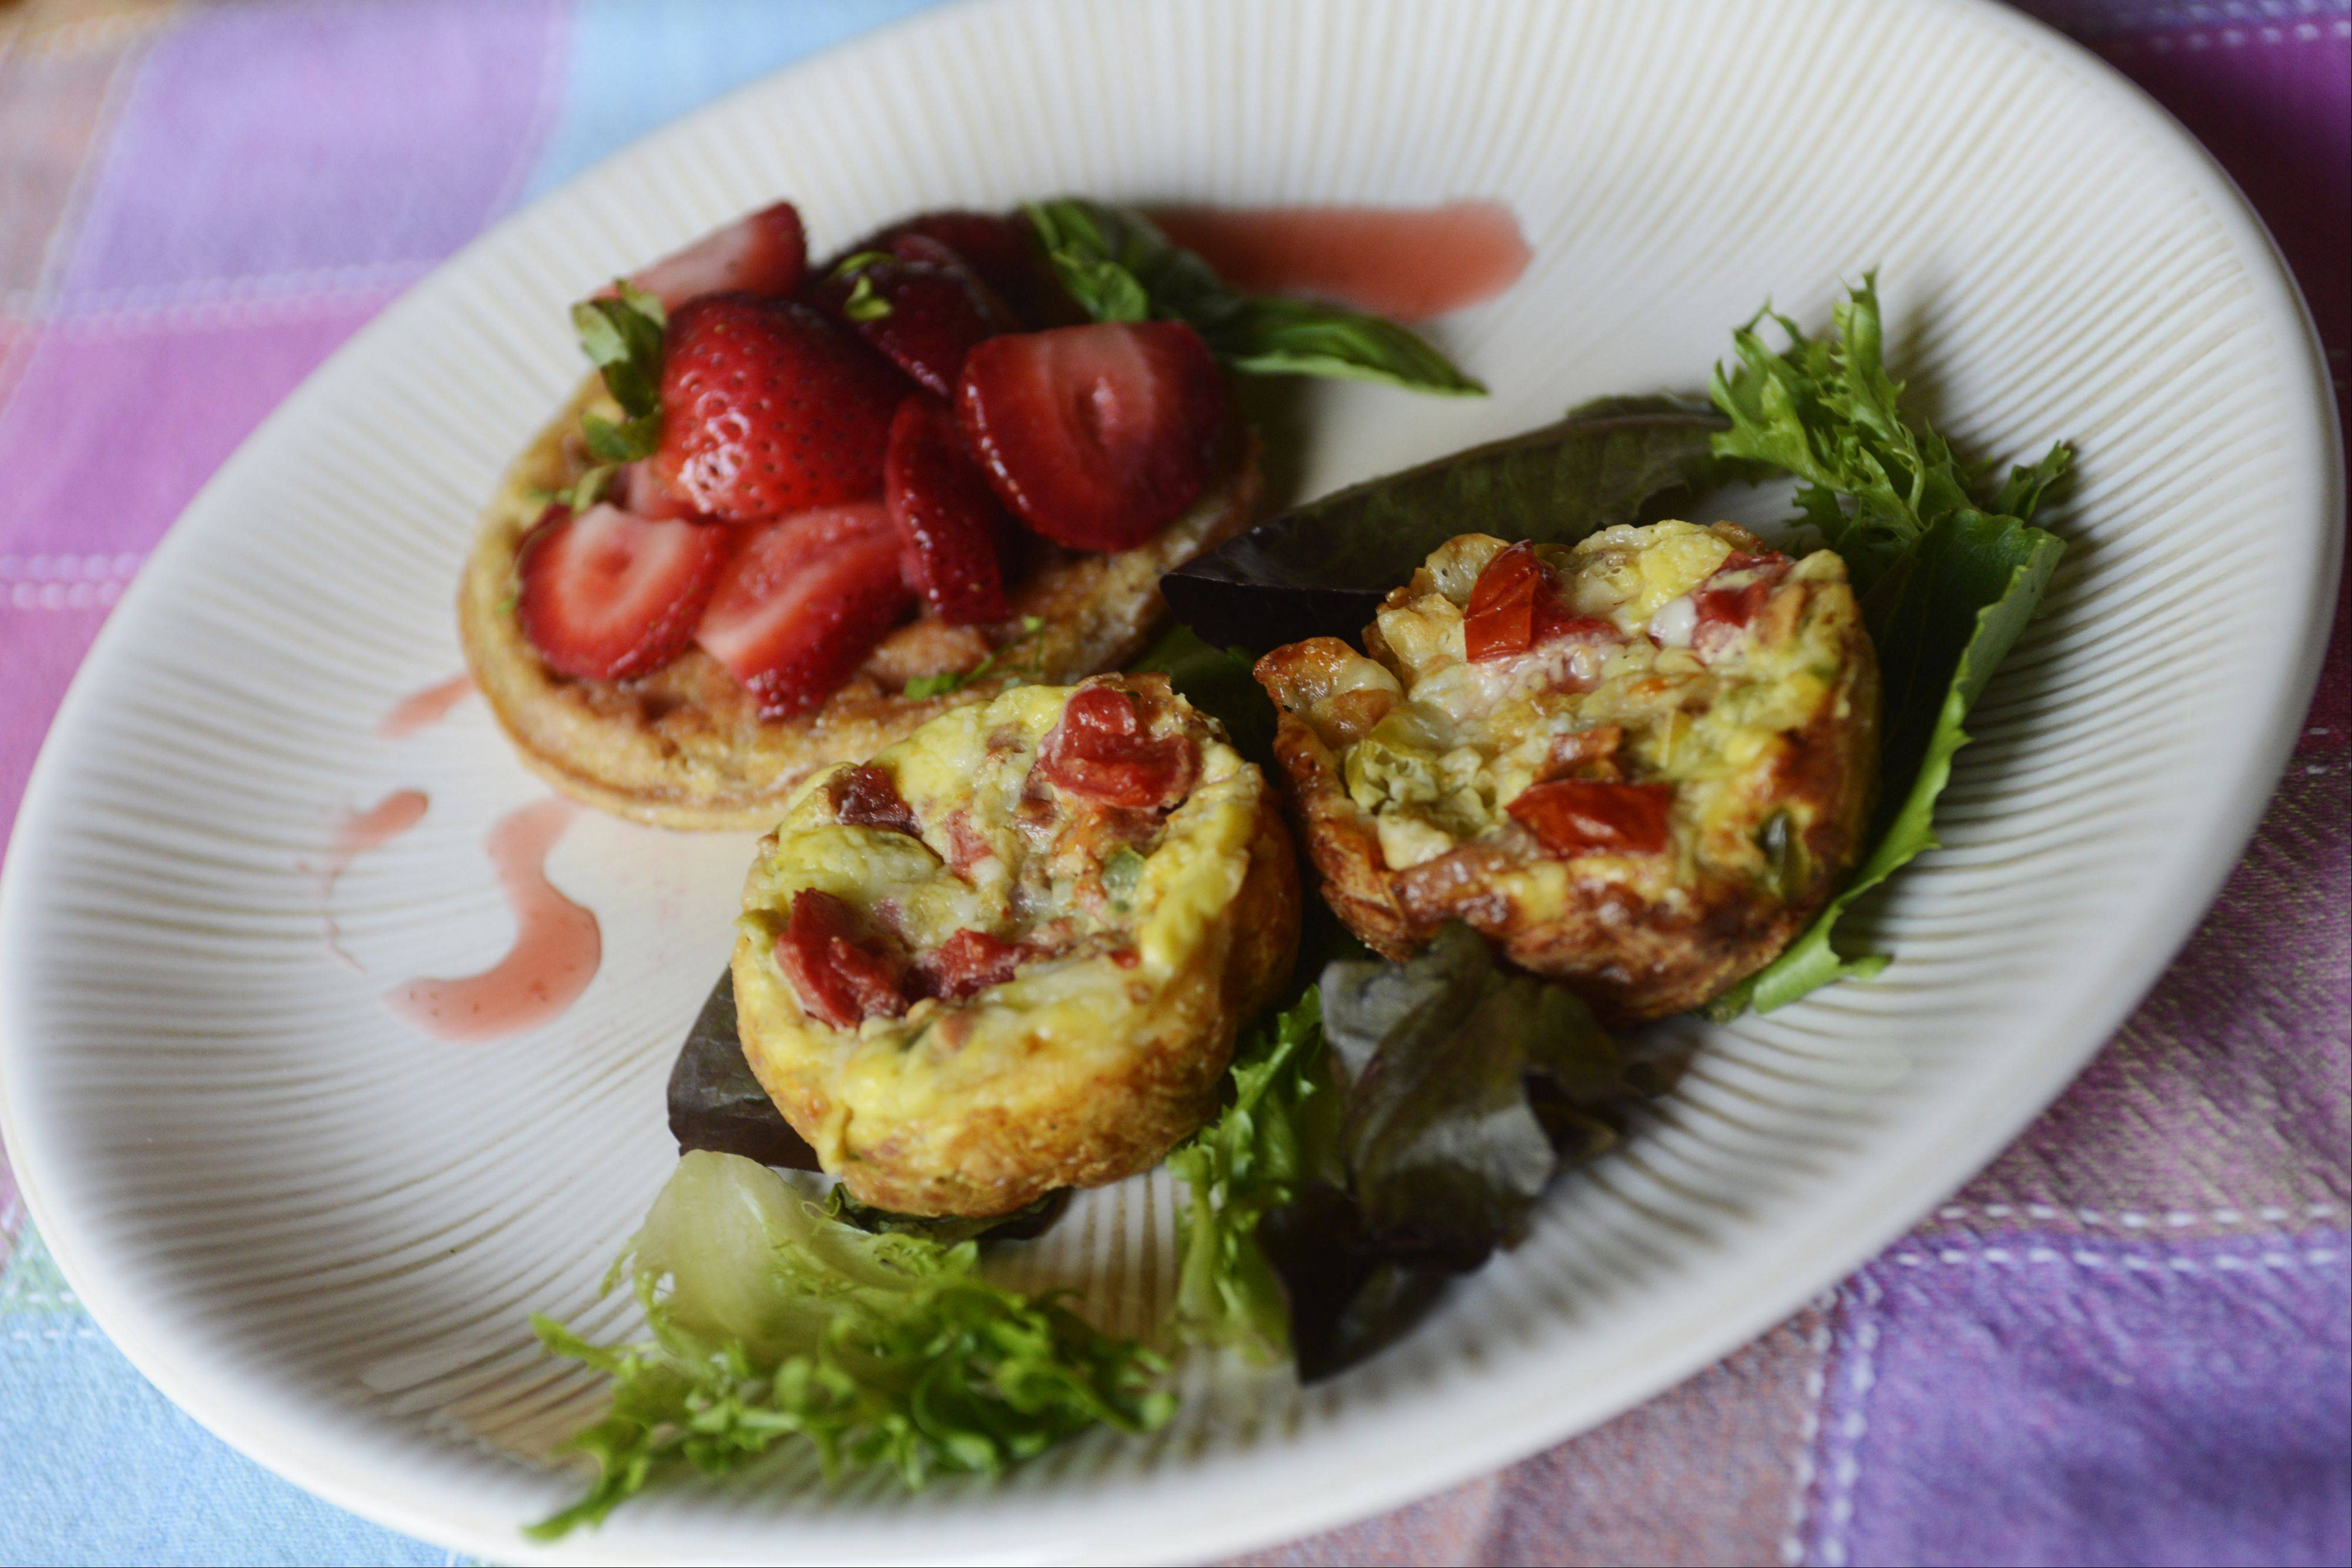 Christine Murphy of Palatine uses frozen multigrain waffles in cheesy mini strata and as the base for a tangy strawberry bruschetta